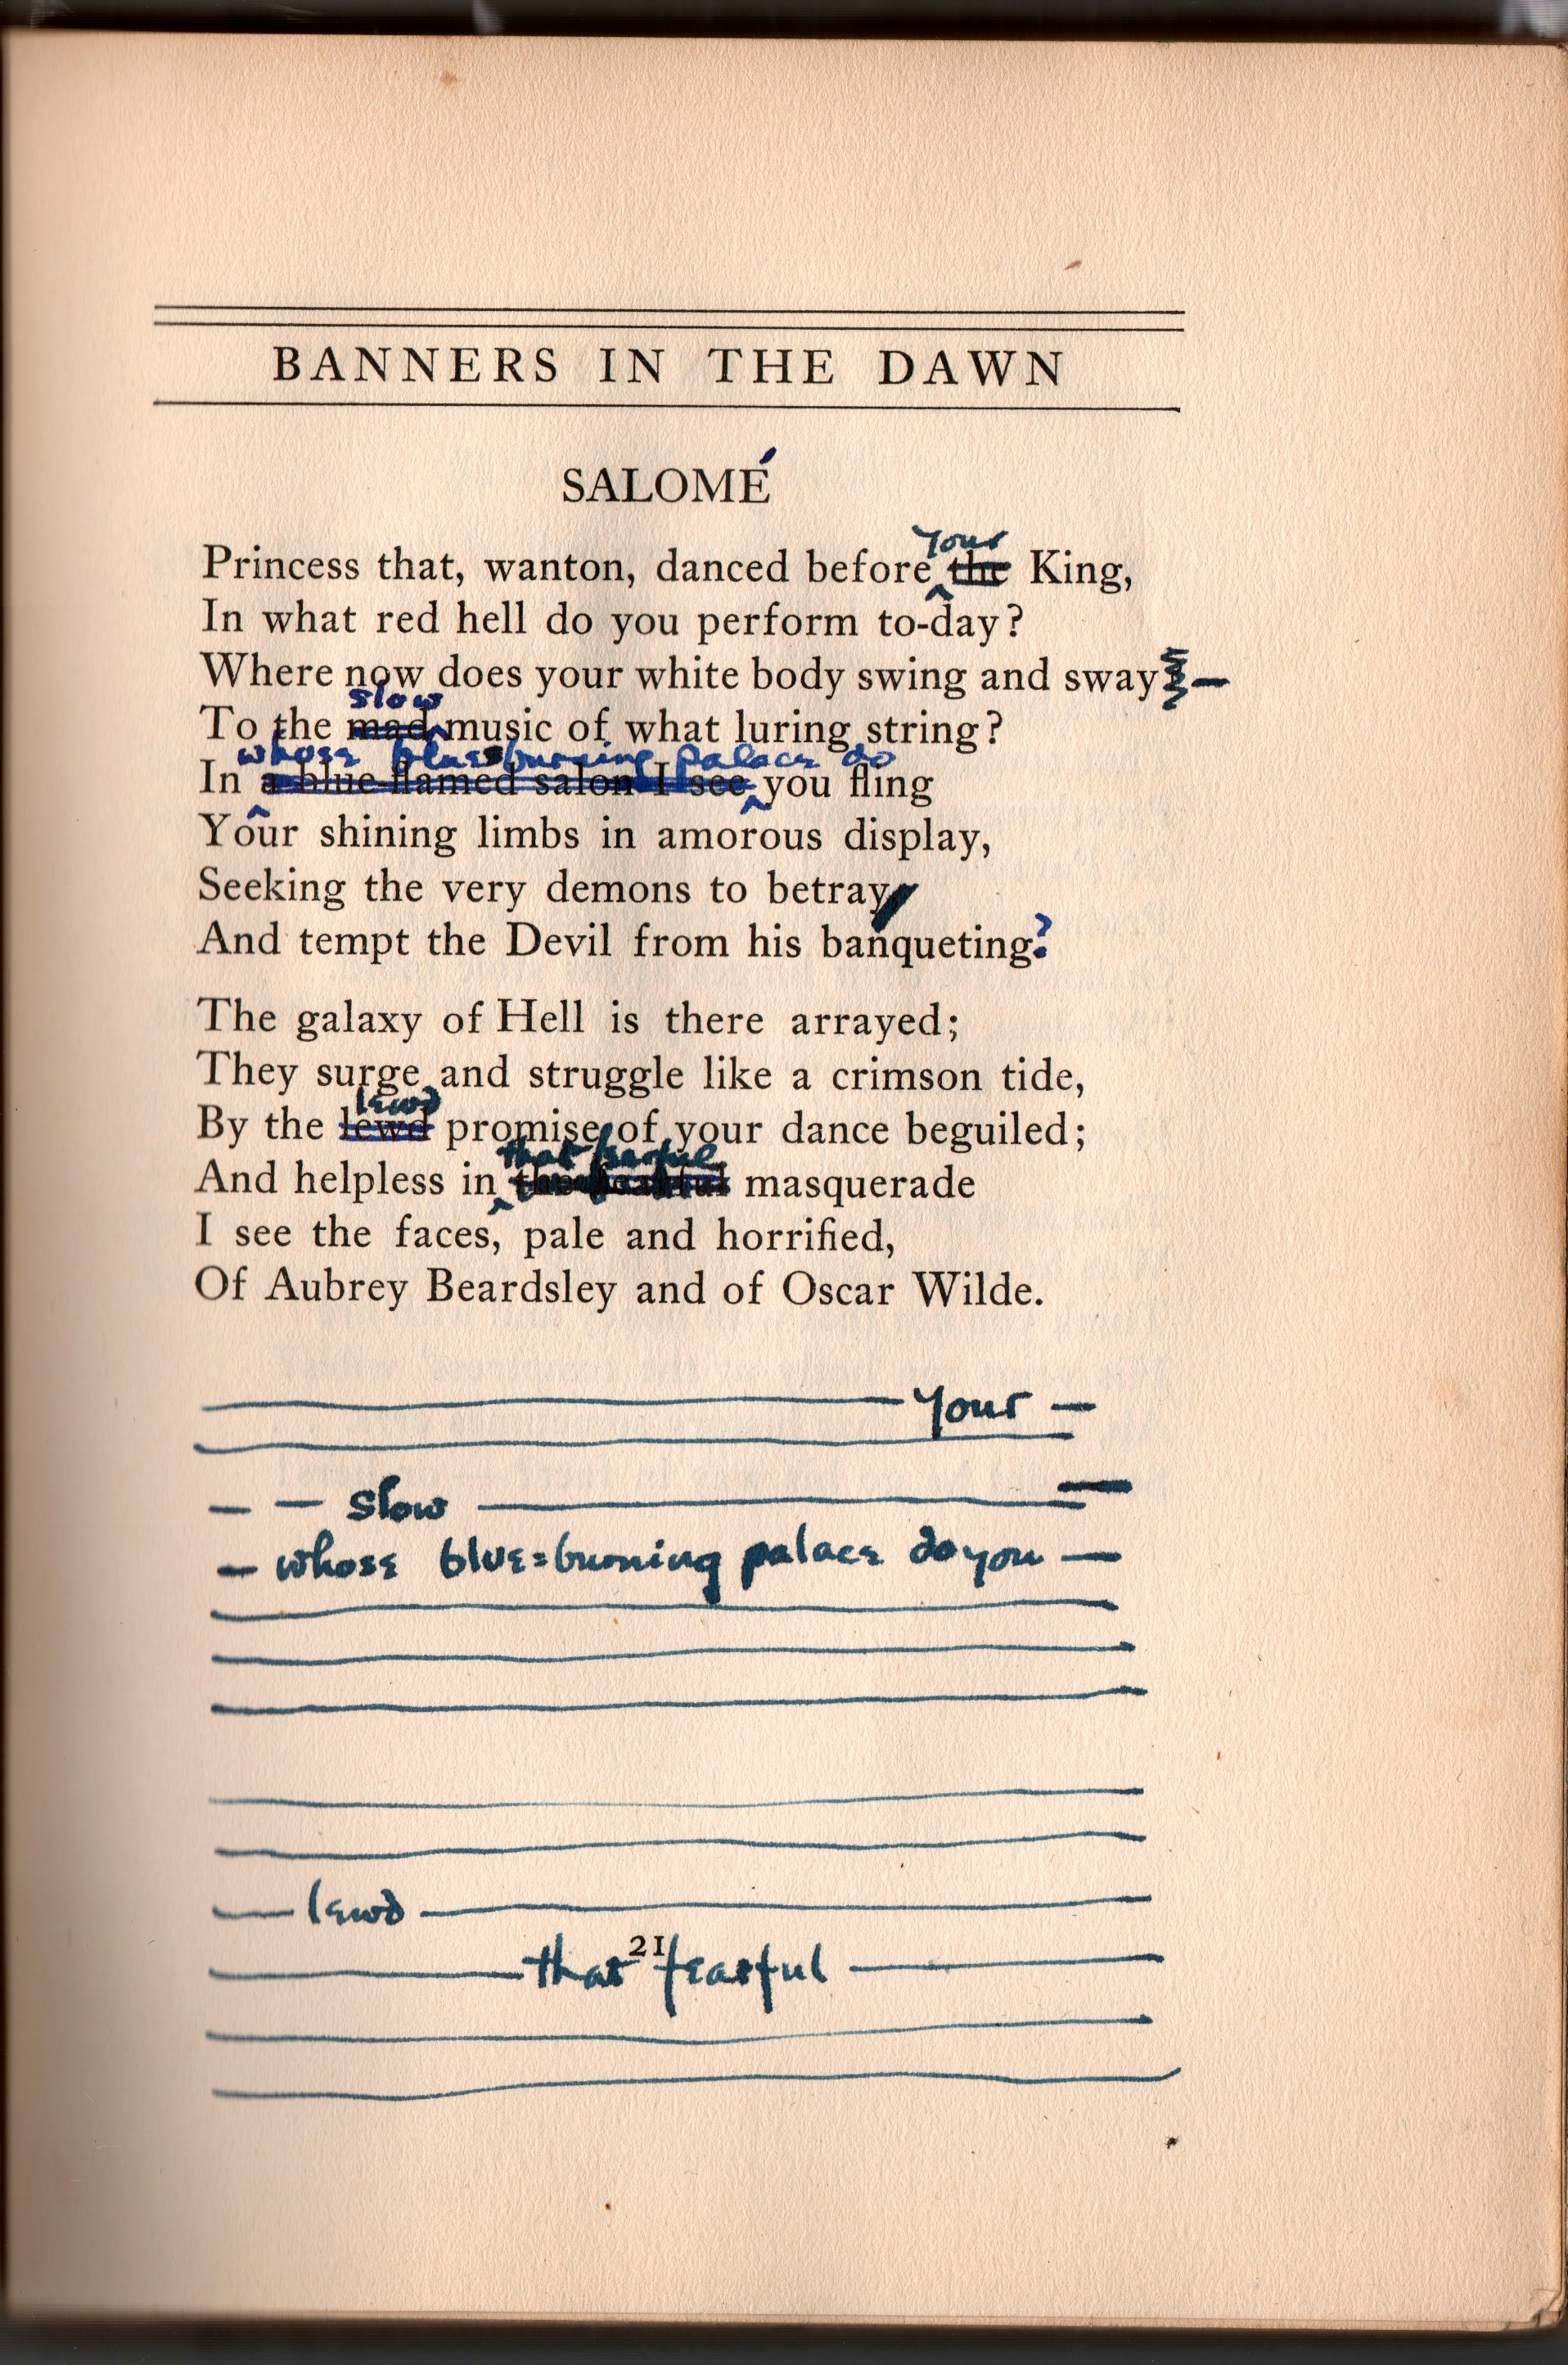 """The annotated version of """"Salomé"""" that is in Fridolf Johnson's copy of Starrett's 1923 book of poetry,  Banners in the Dawn."""